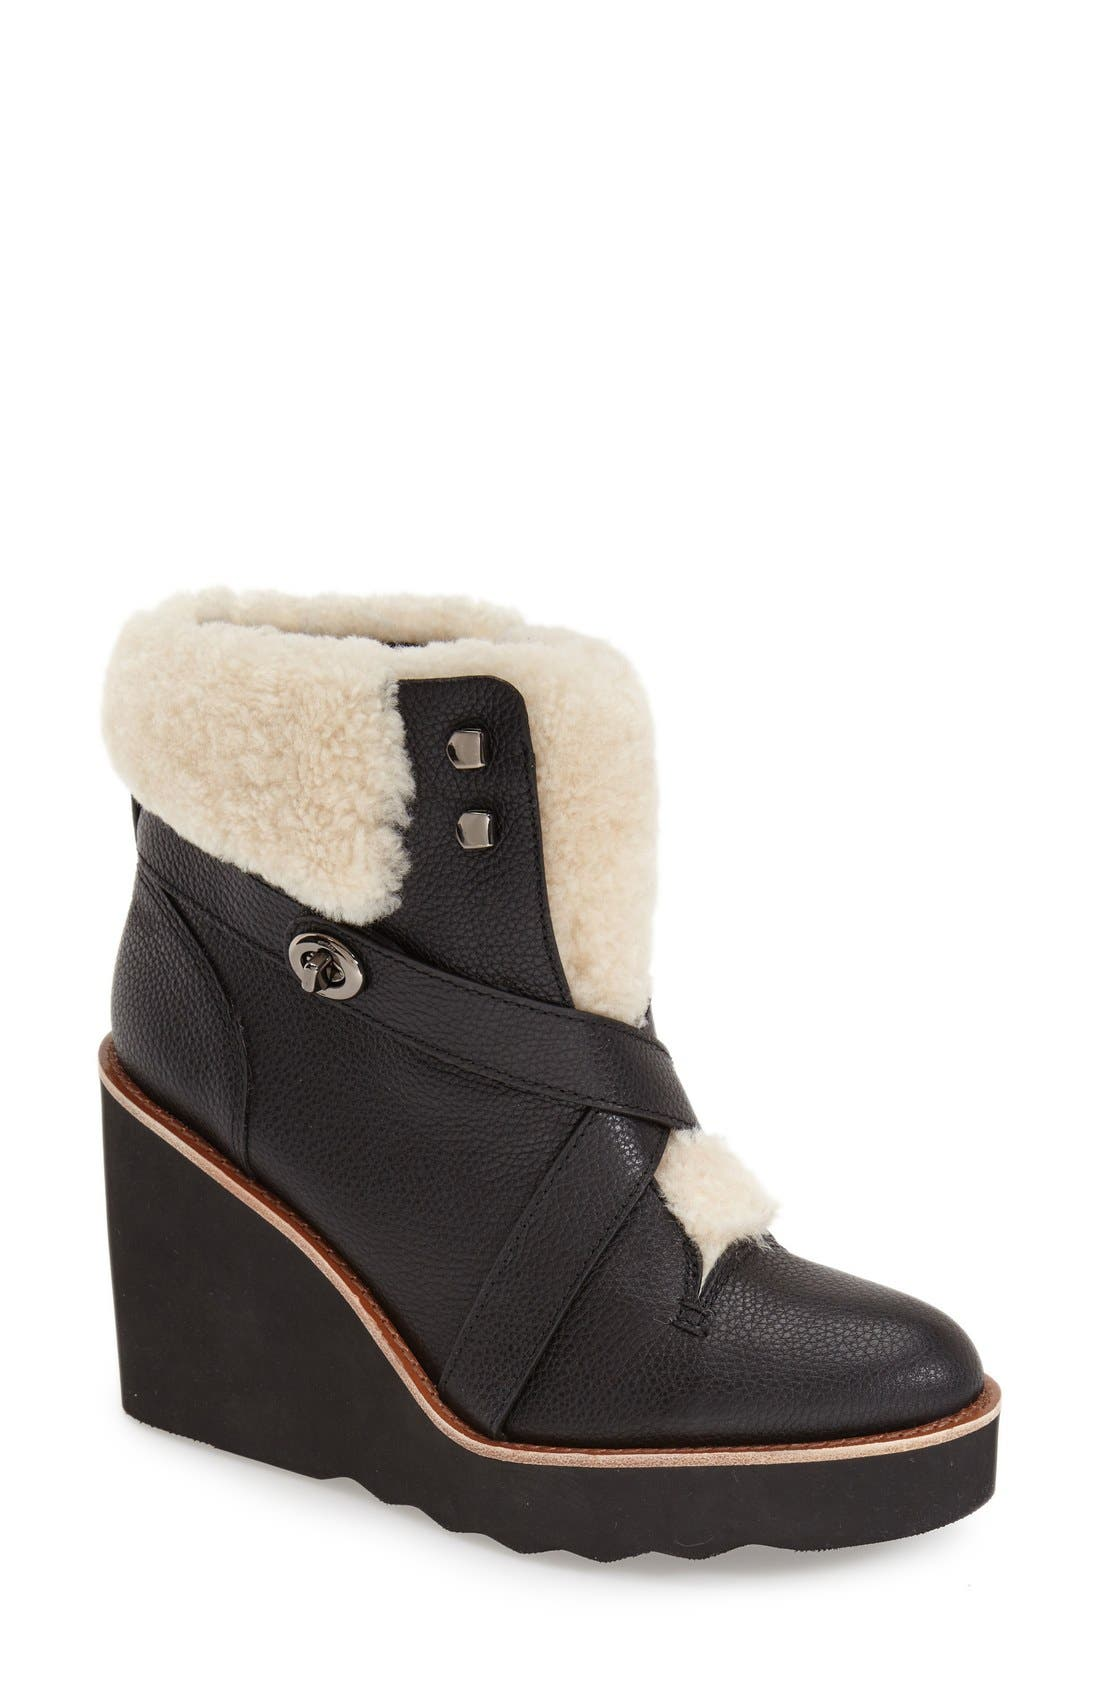 'Kenna' Wedge Bootie,                             Main thumbnail 1, color,                             001